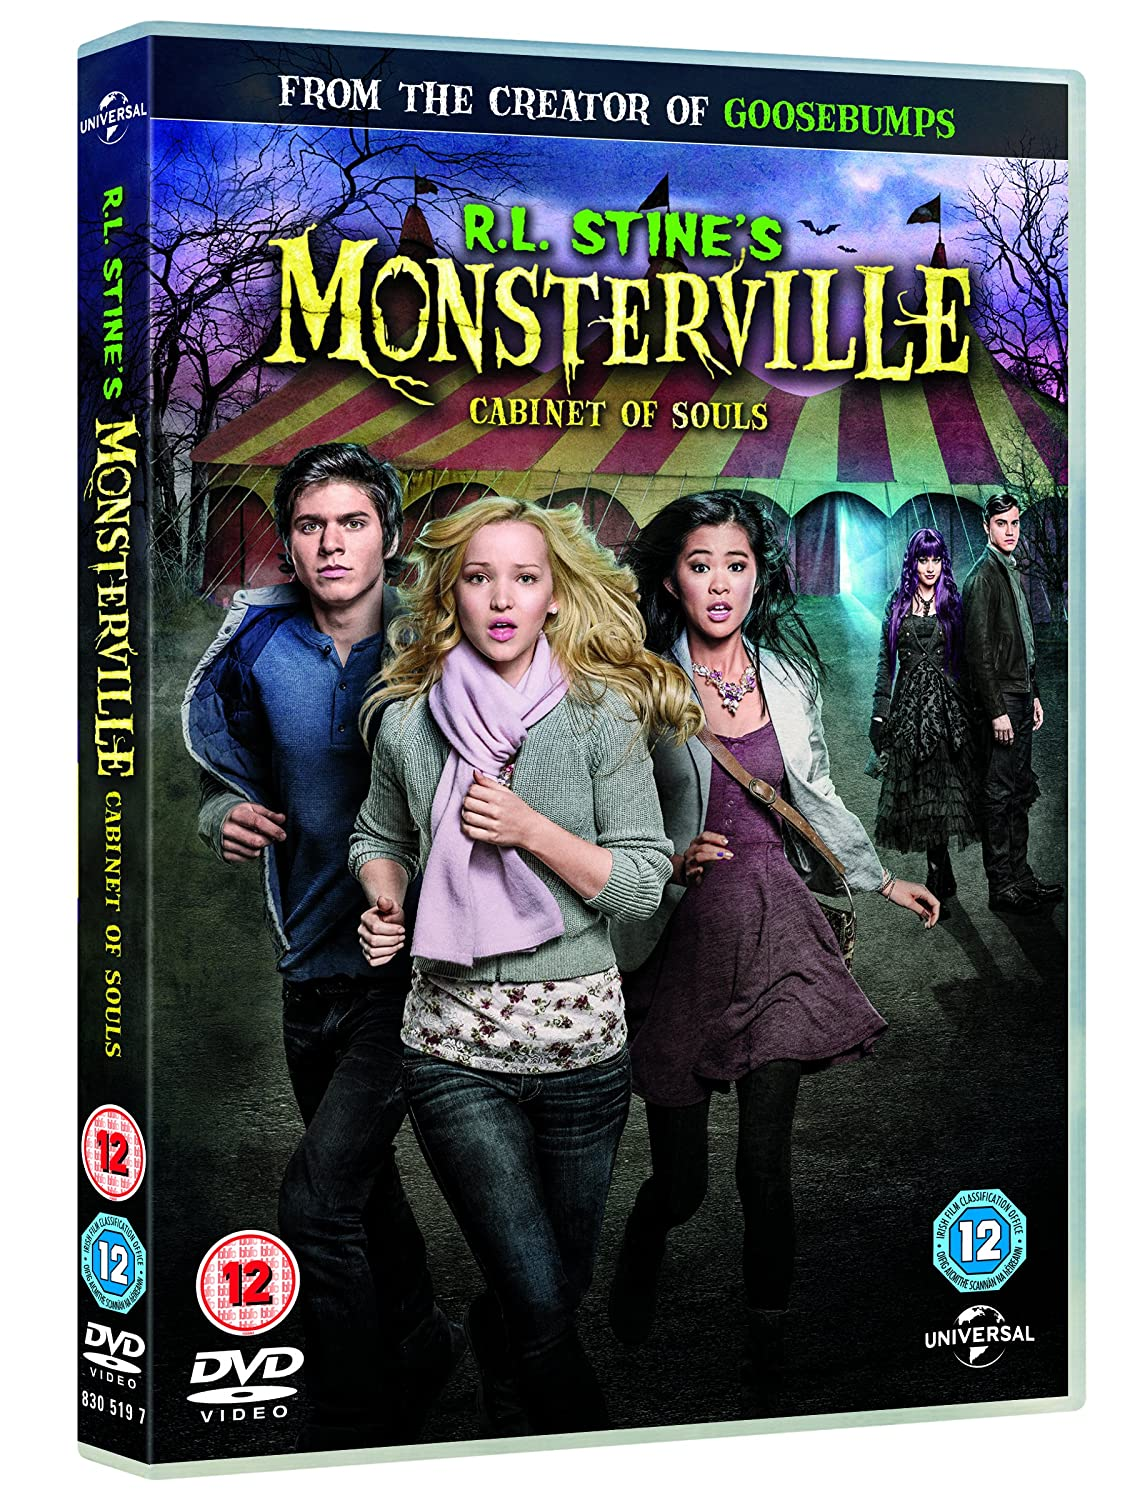 R.L. Stine's Monsterville: The Cabinet Of Souls DVD: Amazon.co.uk ...